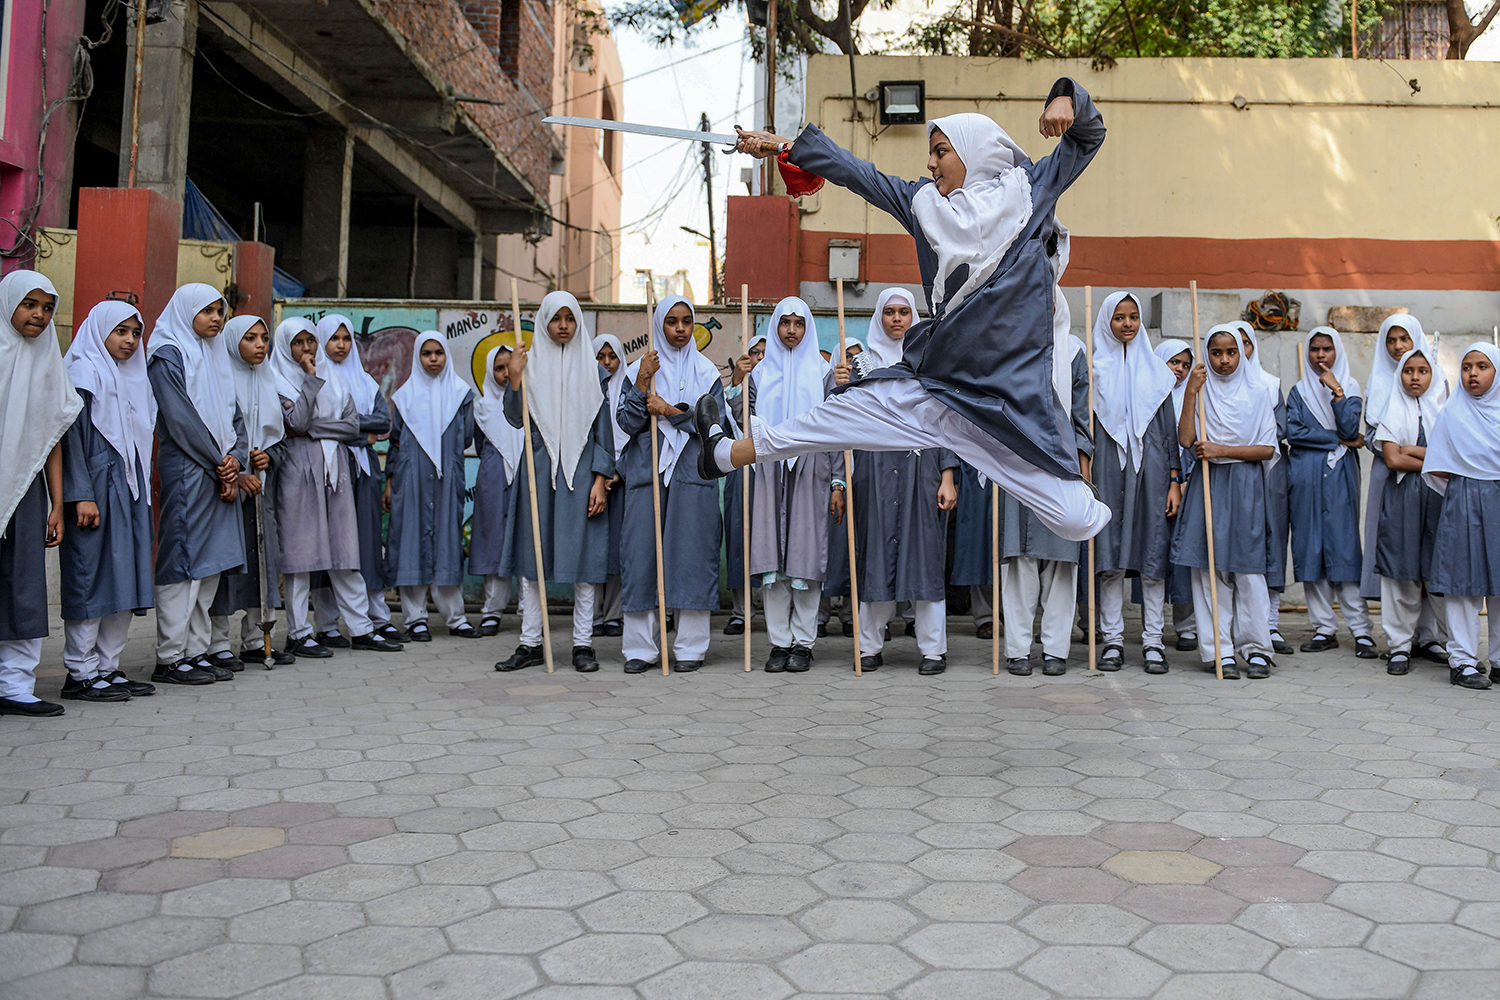 A girl practices Vovinam, a Vietnamese martial art of self-defense, with swords and sticks at St. Maaz High School in Hyderabad, India, on March 5. The school was preparing for an upcoming International Women's Day performance. NOAH SEELAM/AFP via Getty Images